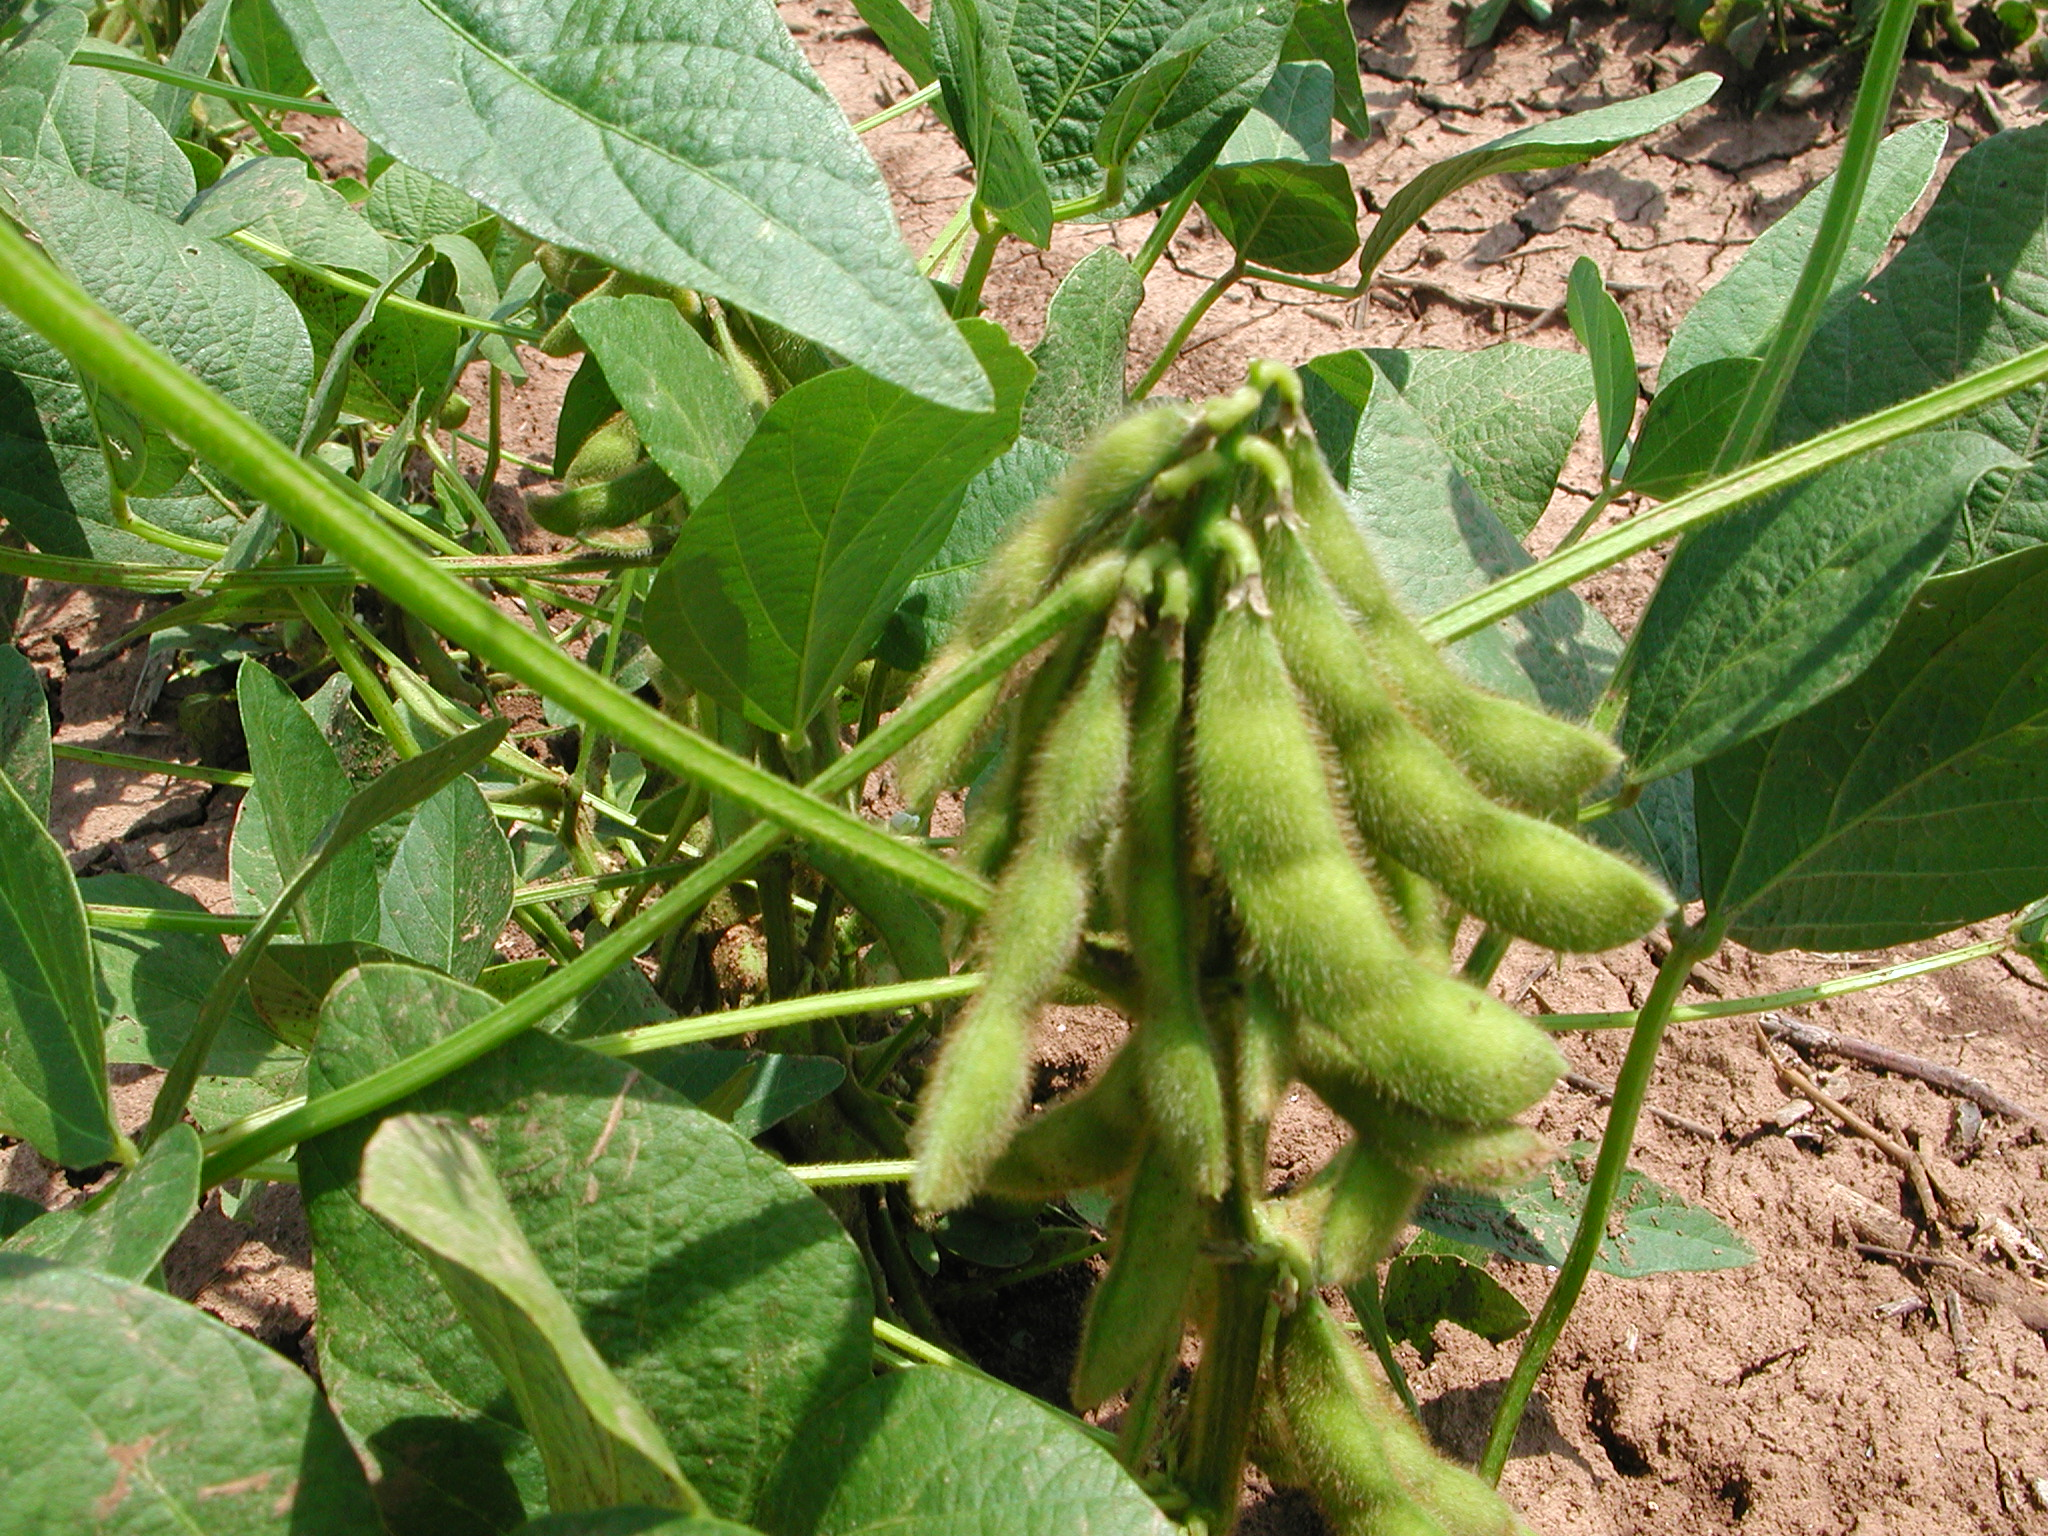 soybean_pods